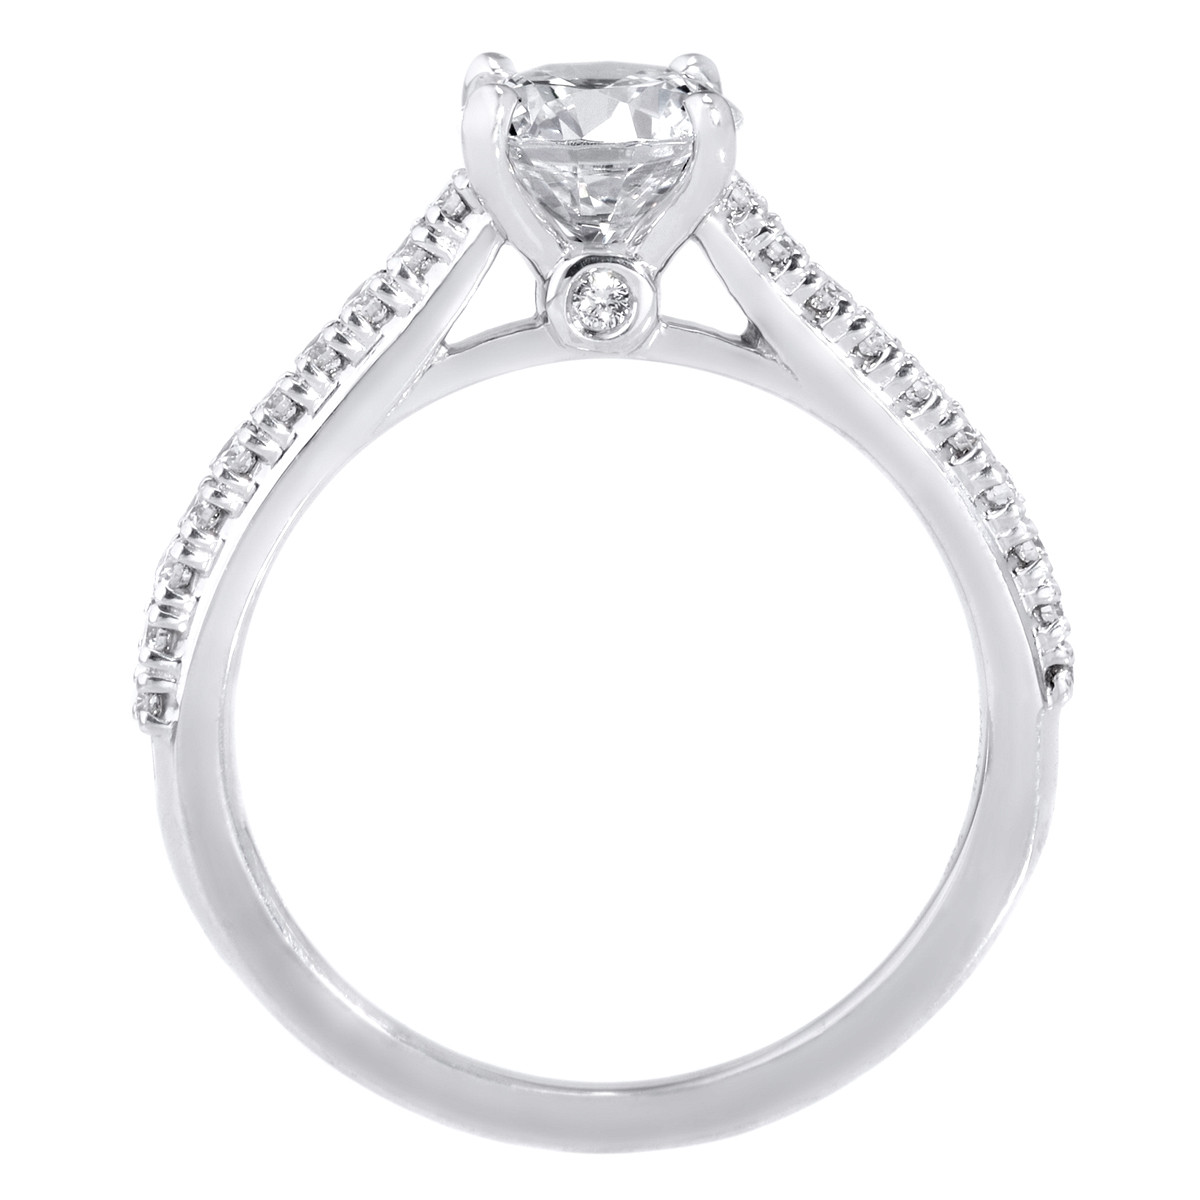 18K White Gold French Set Diamond Band Engagement Ring with Surprise Diamonds